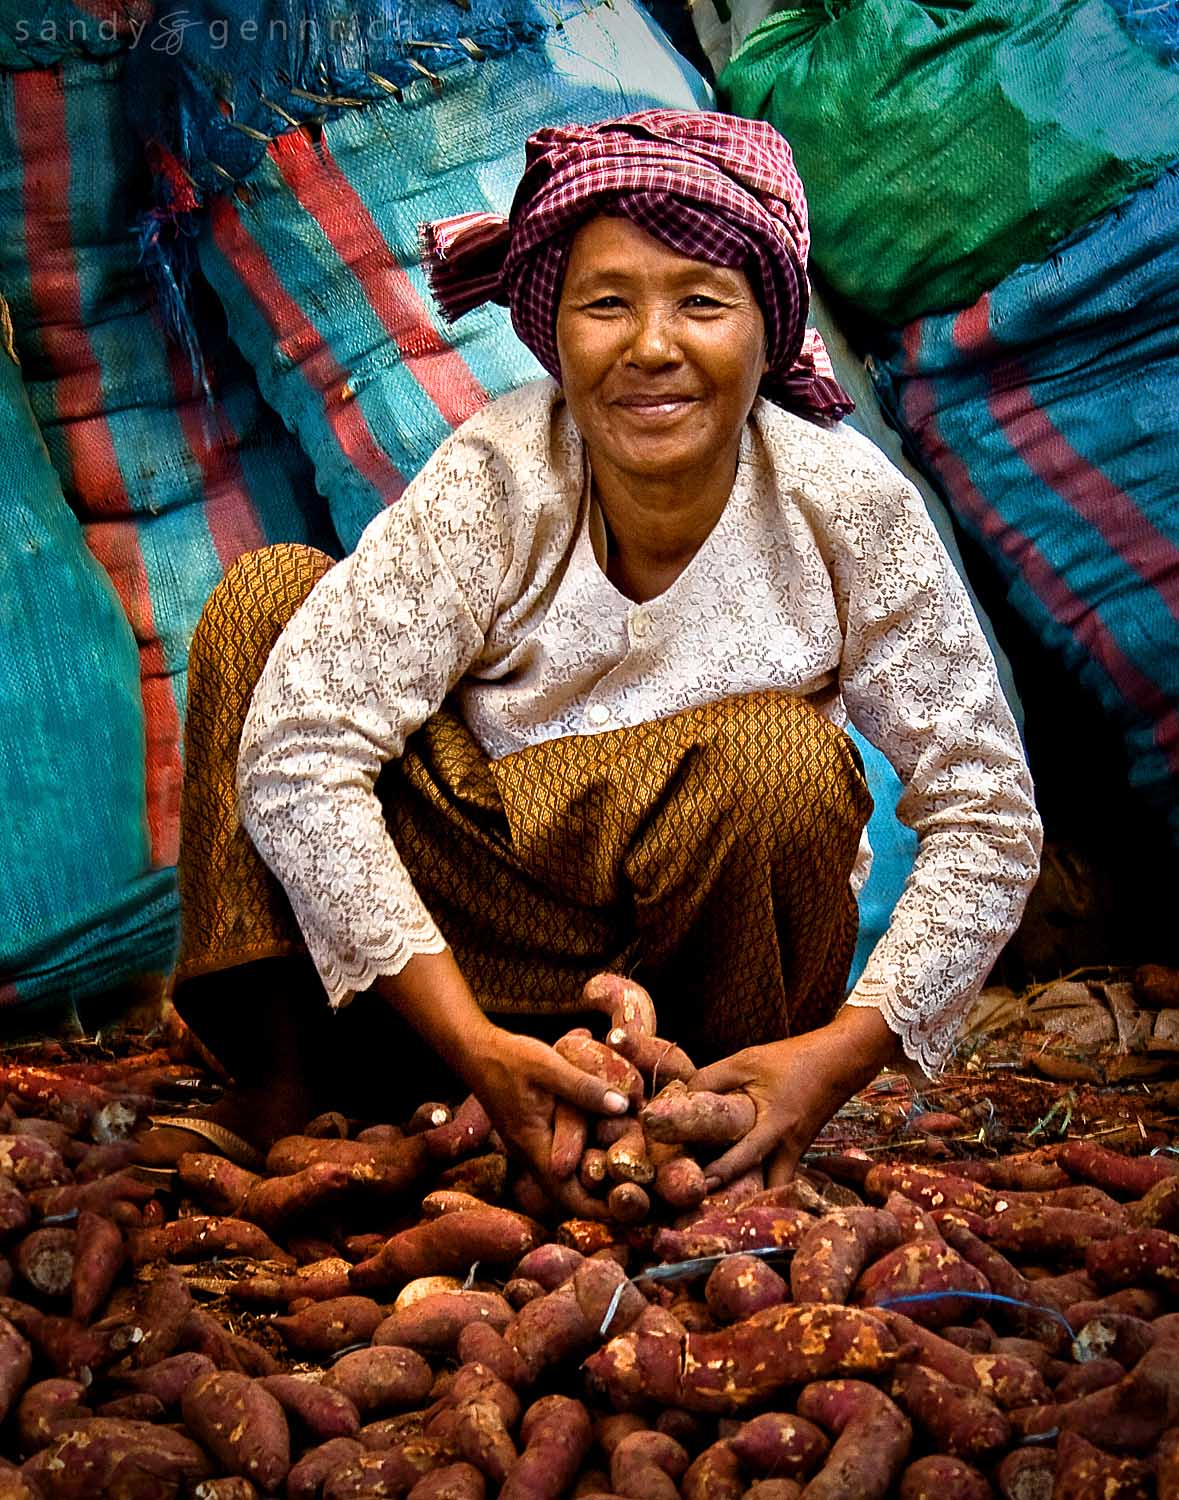 Lady with Potatoes, Cambodia